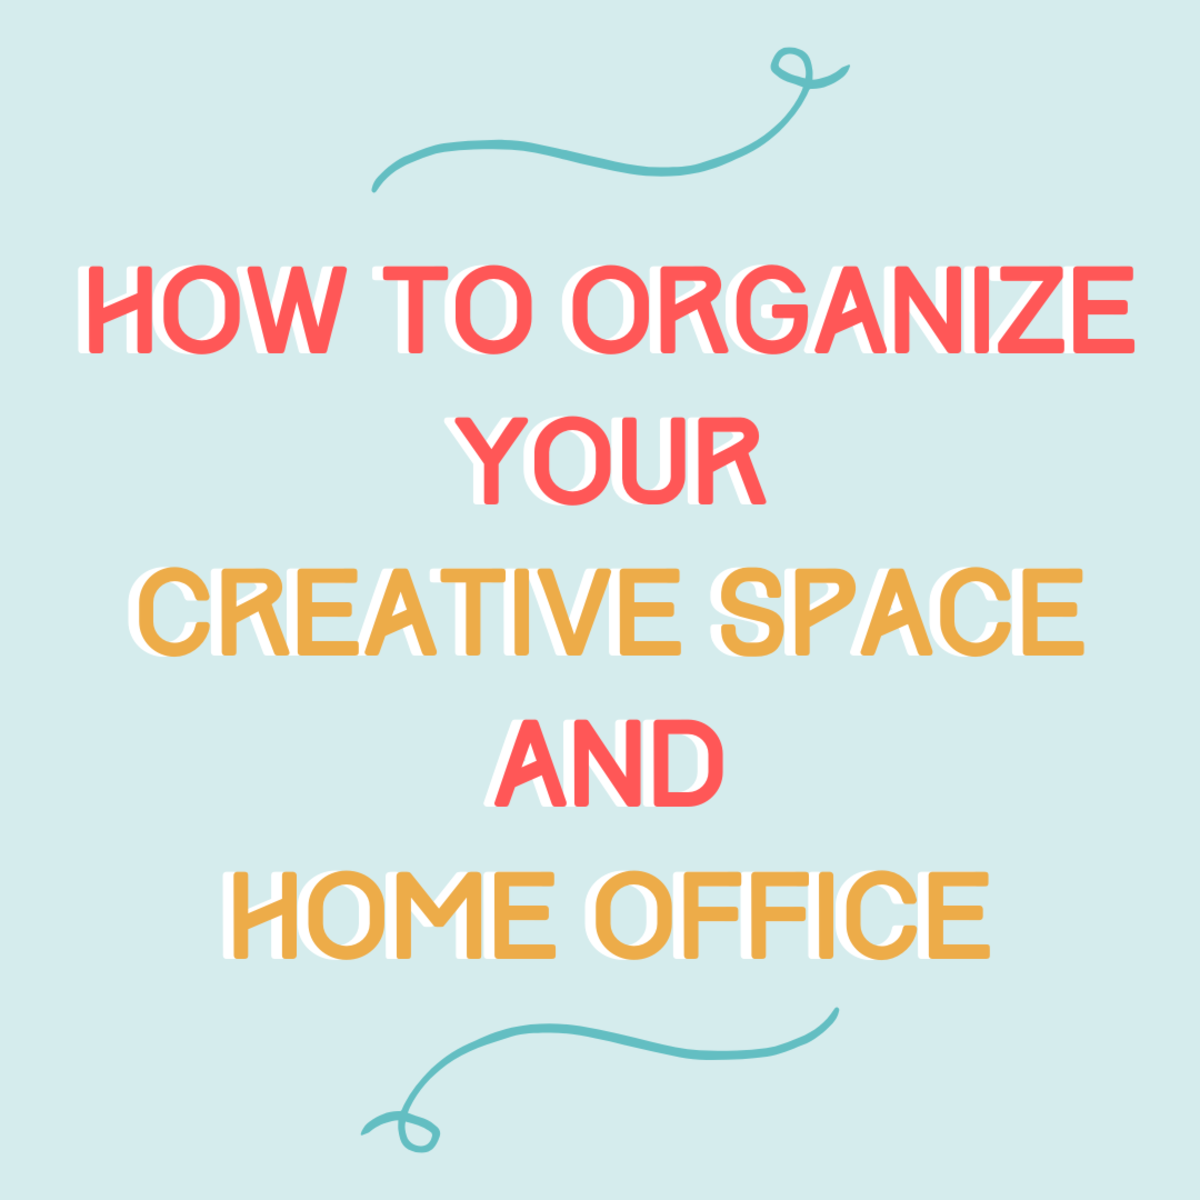 Are You Creative but Disorganized? Help Is Here!